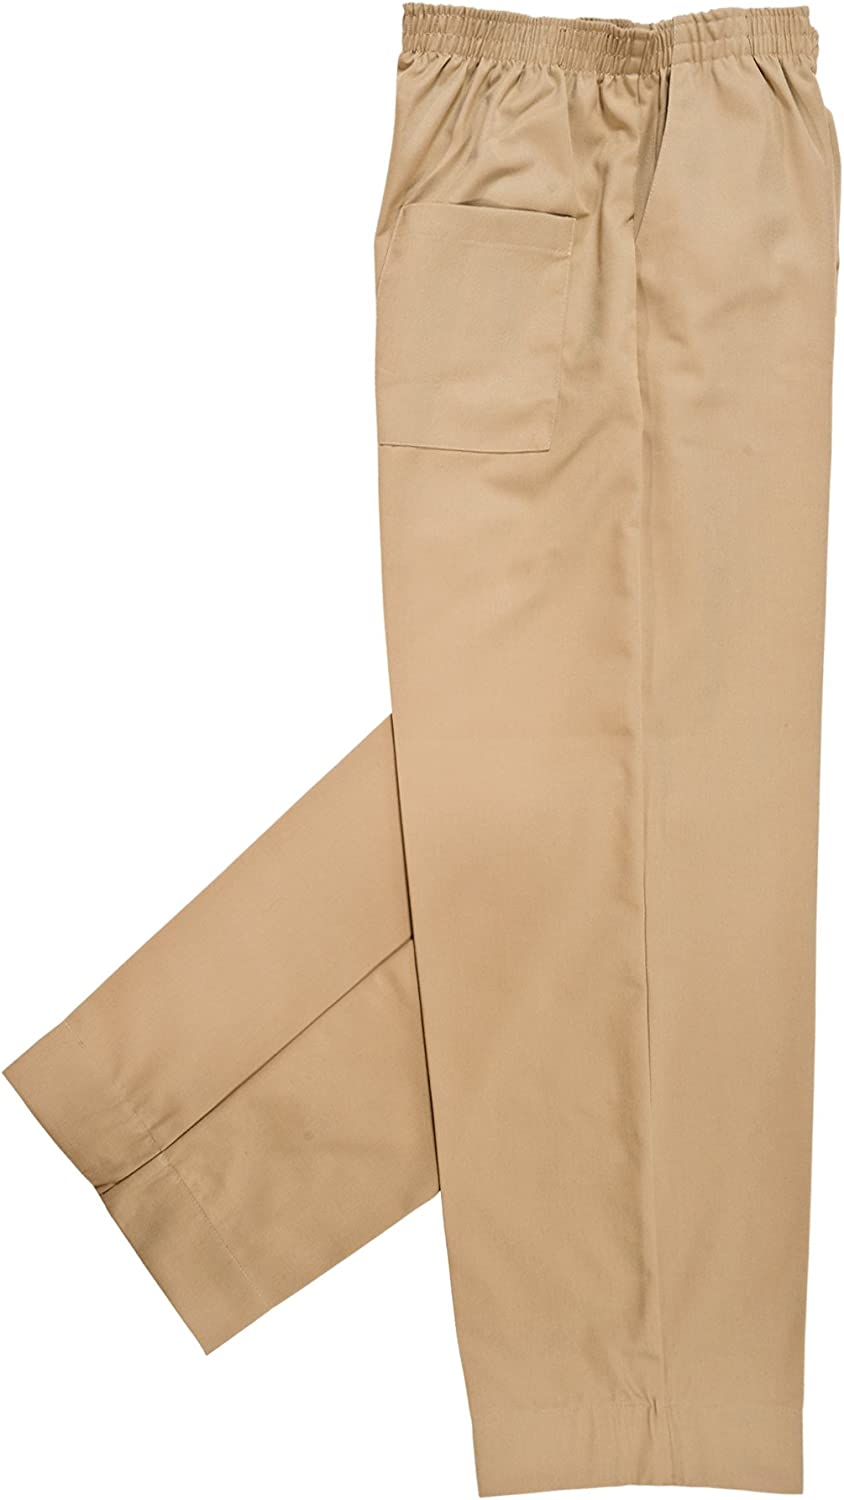 Mens Full Elastic Waist Pants with Mock Fly